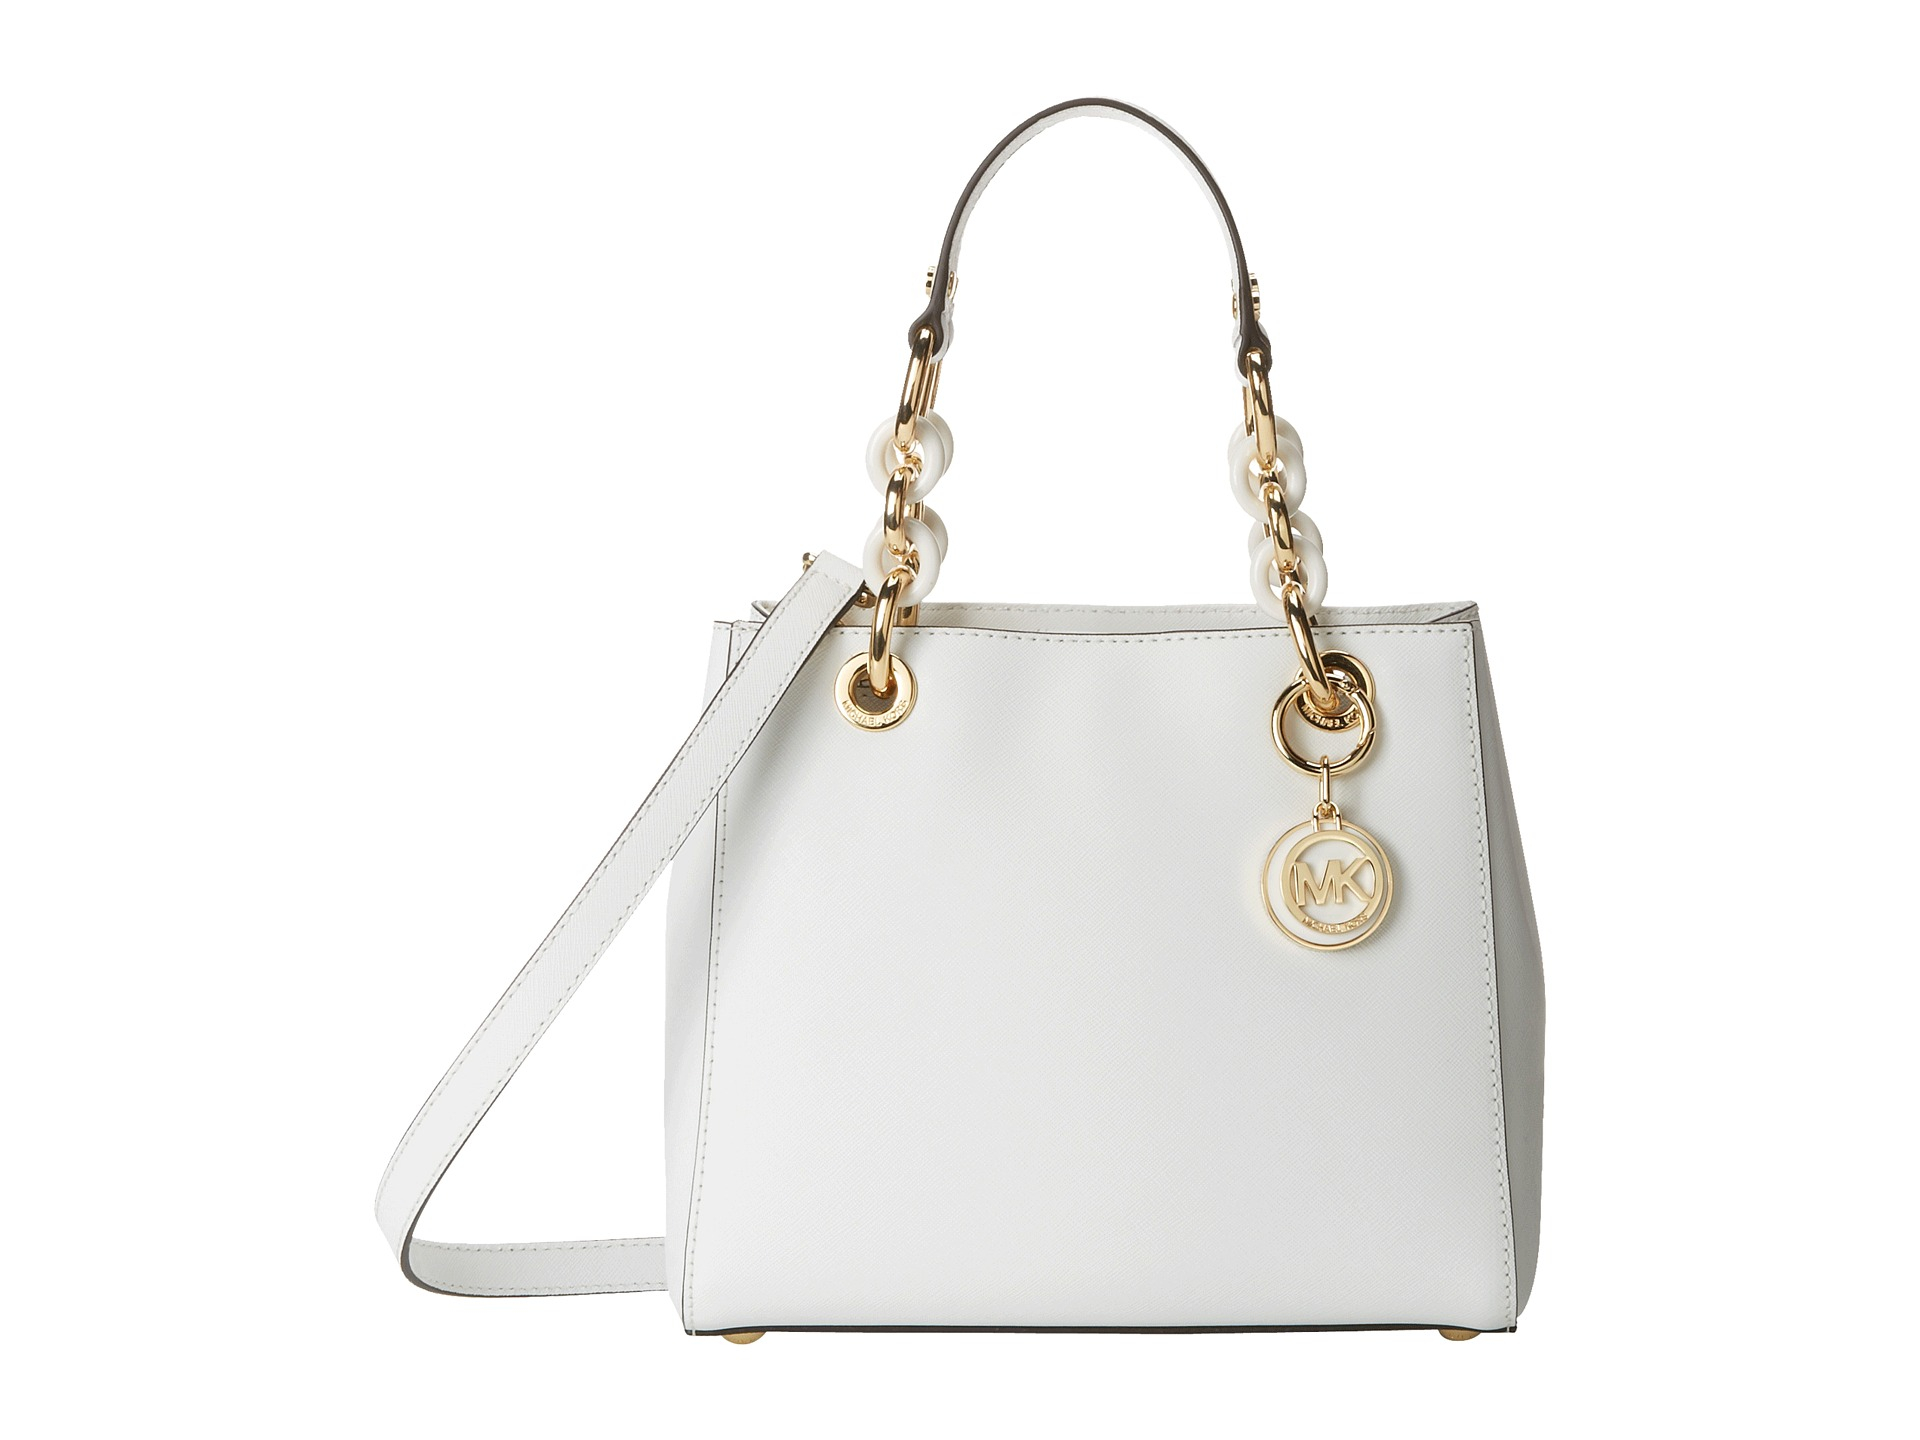 d420493ae64600 Gallery. Previously sold at: Zappos · Women's Michael By Michael Kors  Cynthia